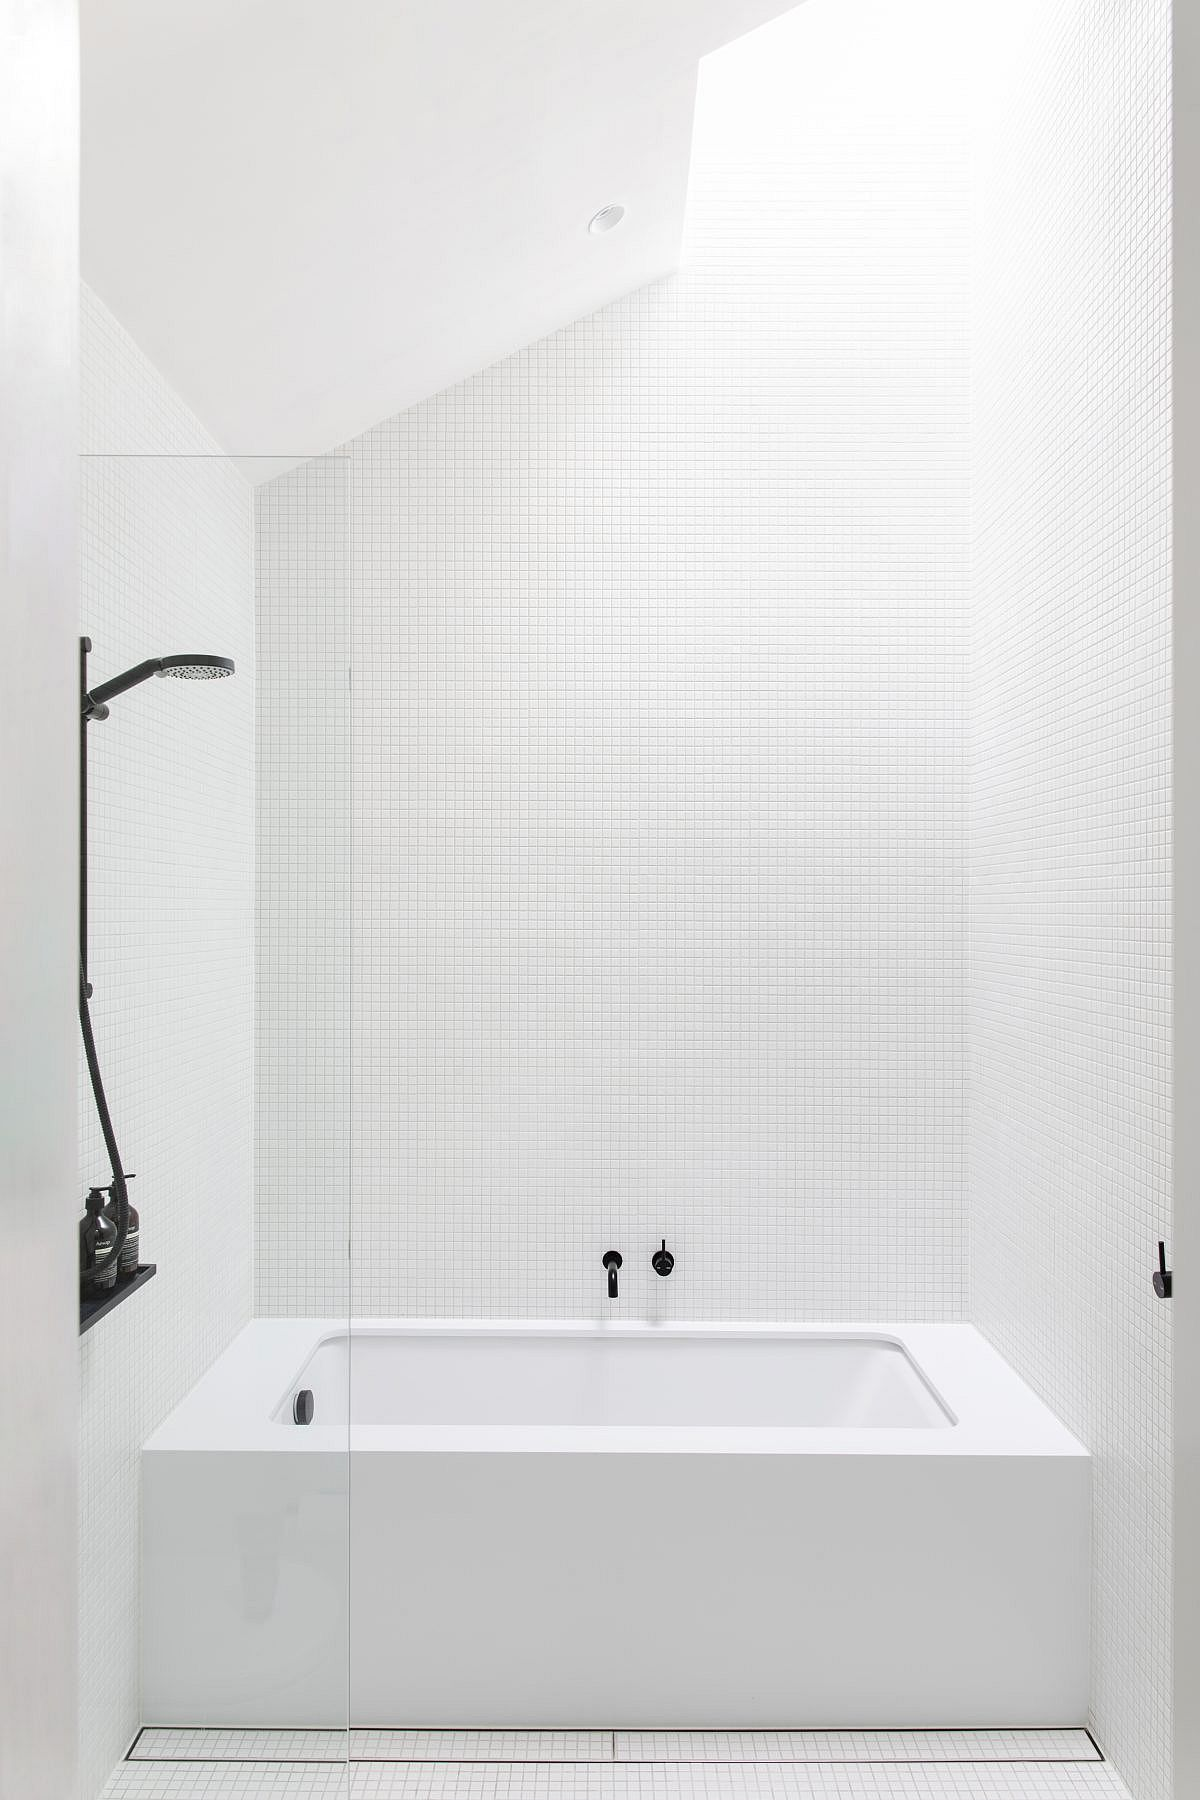 Exquisite-contemporary-monochromaic-bathroom-in-white-with-natural-light-37593